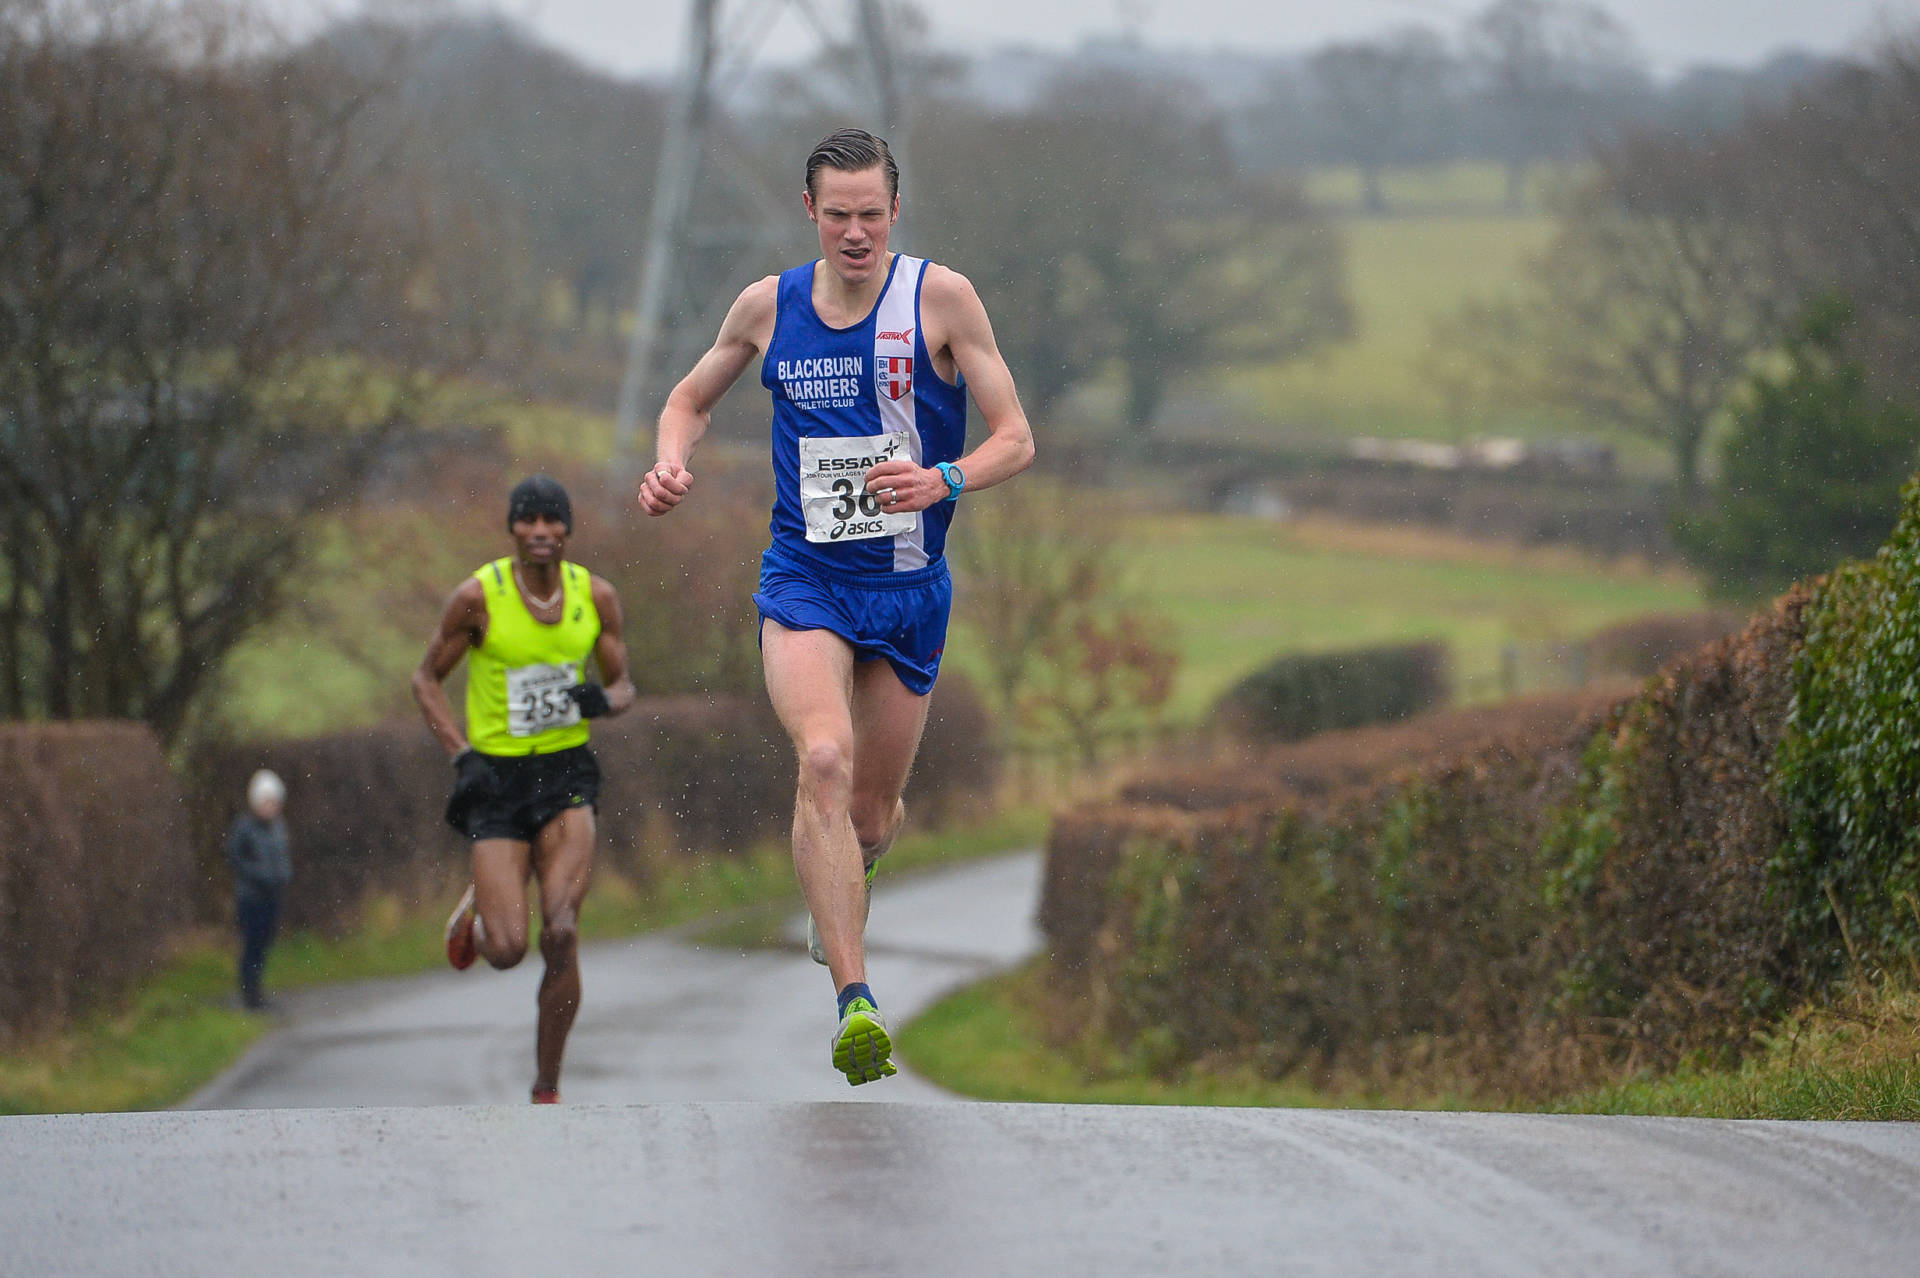 Ben Wins Four Villages Half-Marathon – Chris & Paul set new PB's at Inskip Half-Marathon – Ben PB's at Sportscity – Lindsay & Lorna running London Marathon for good causes